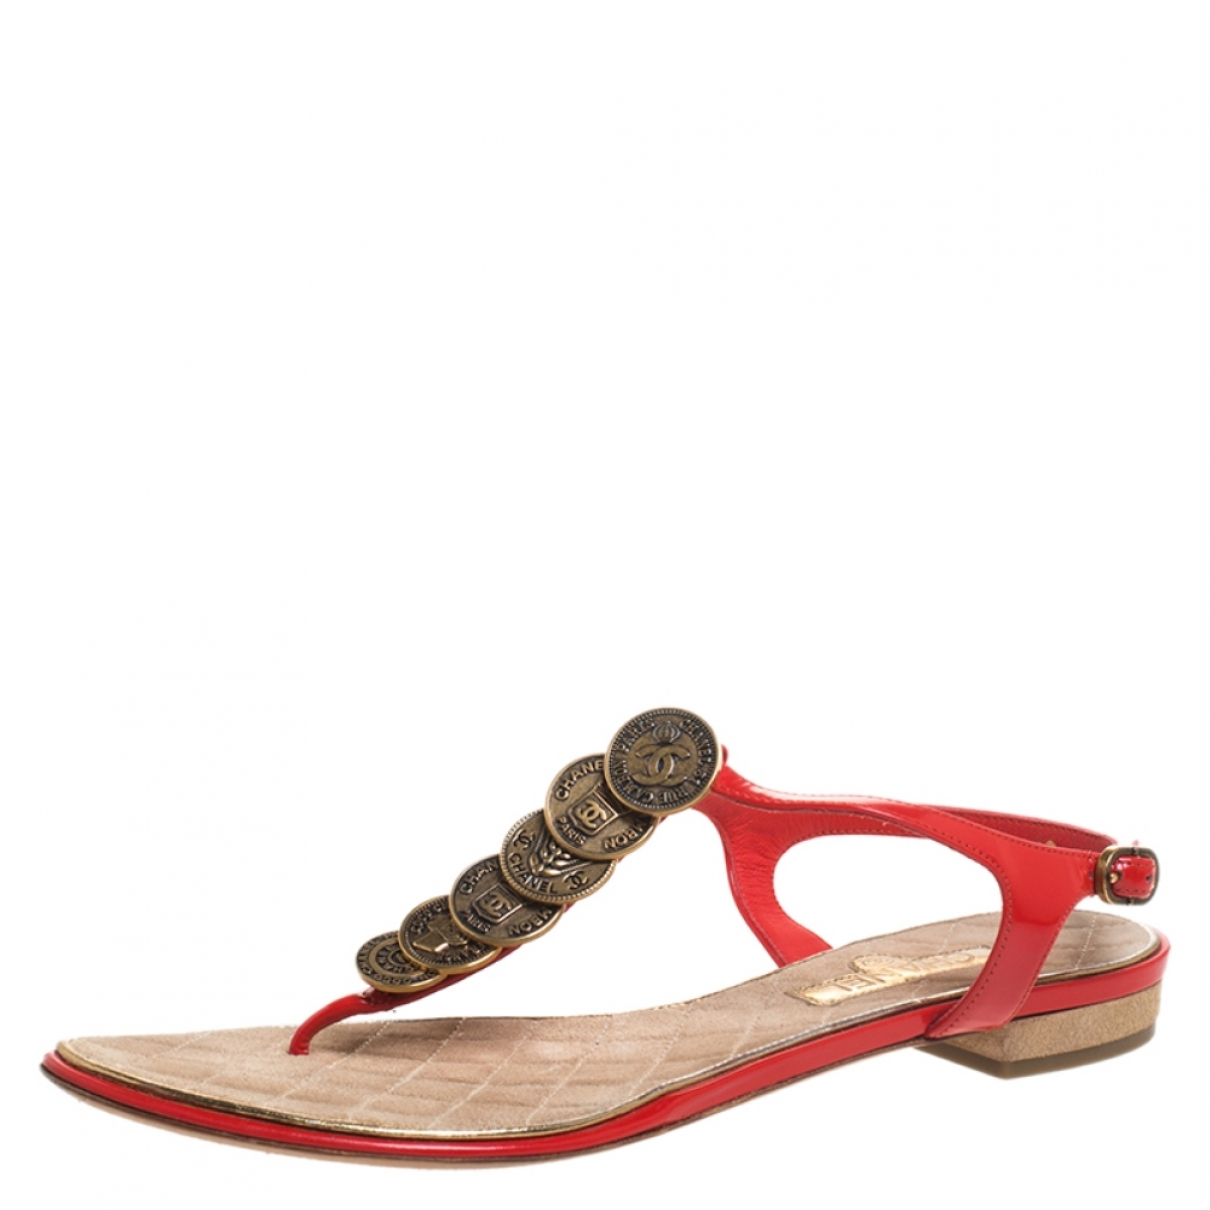 Chanel \N Red Suede Sandals for Women 37.5 EU